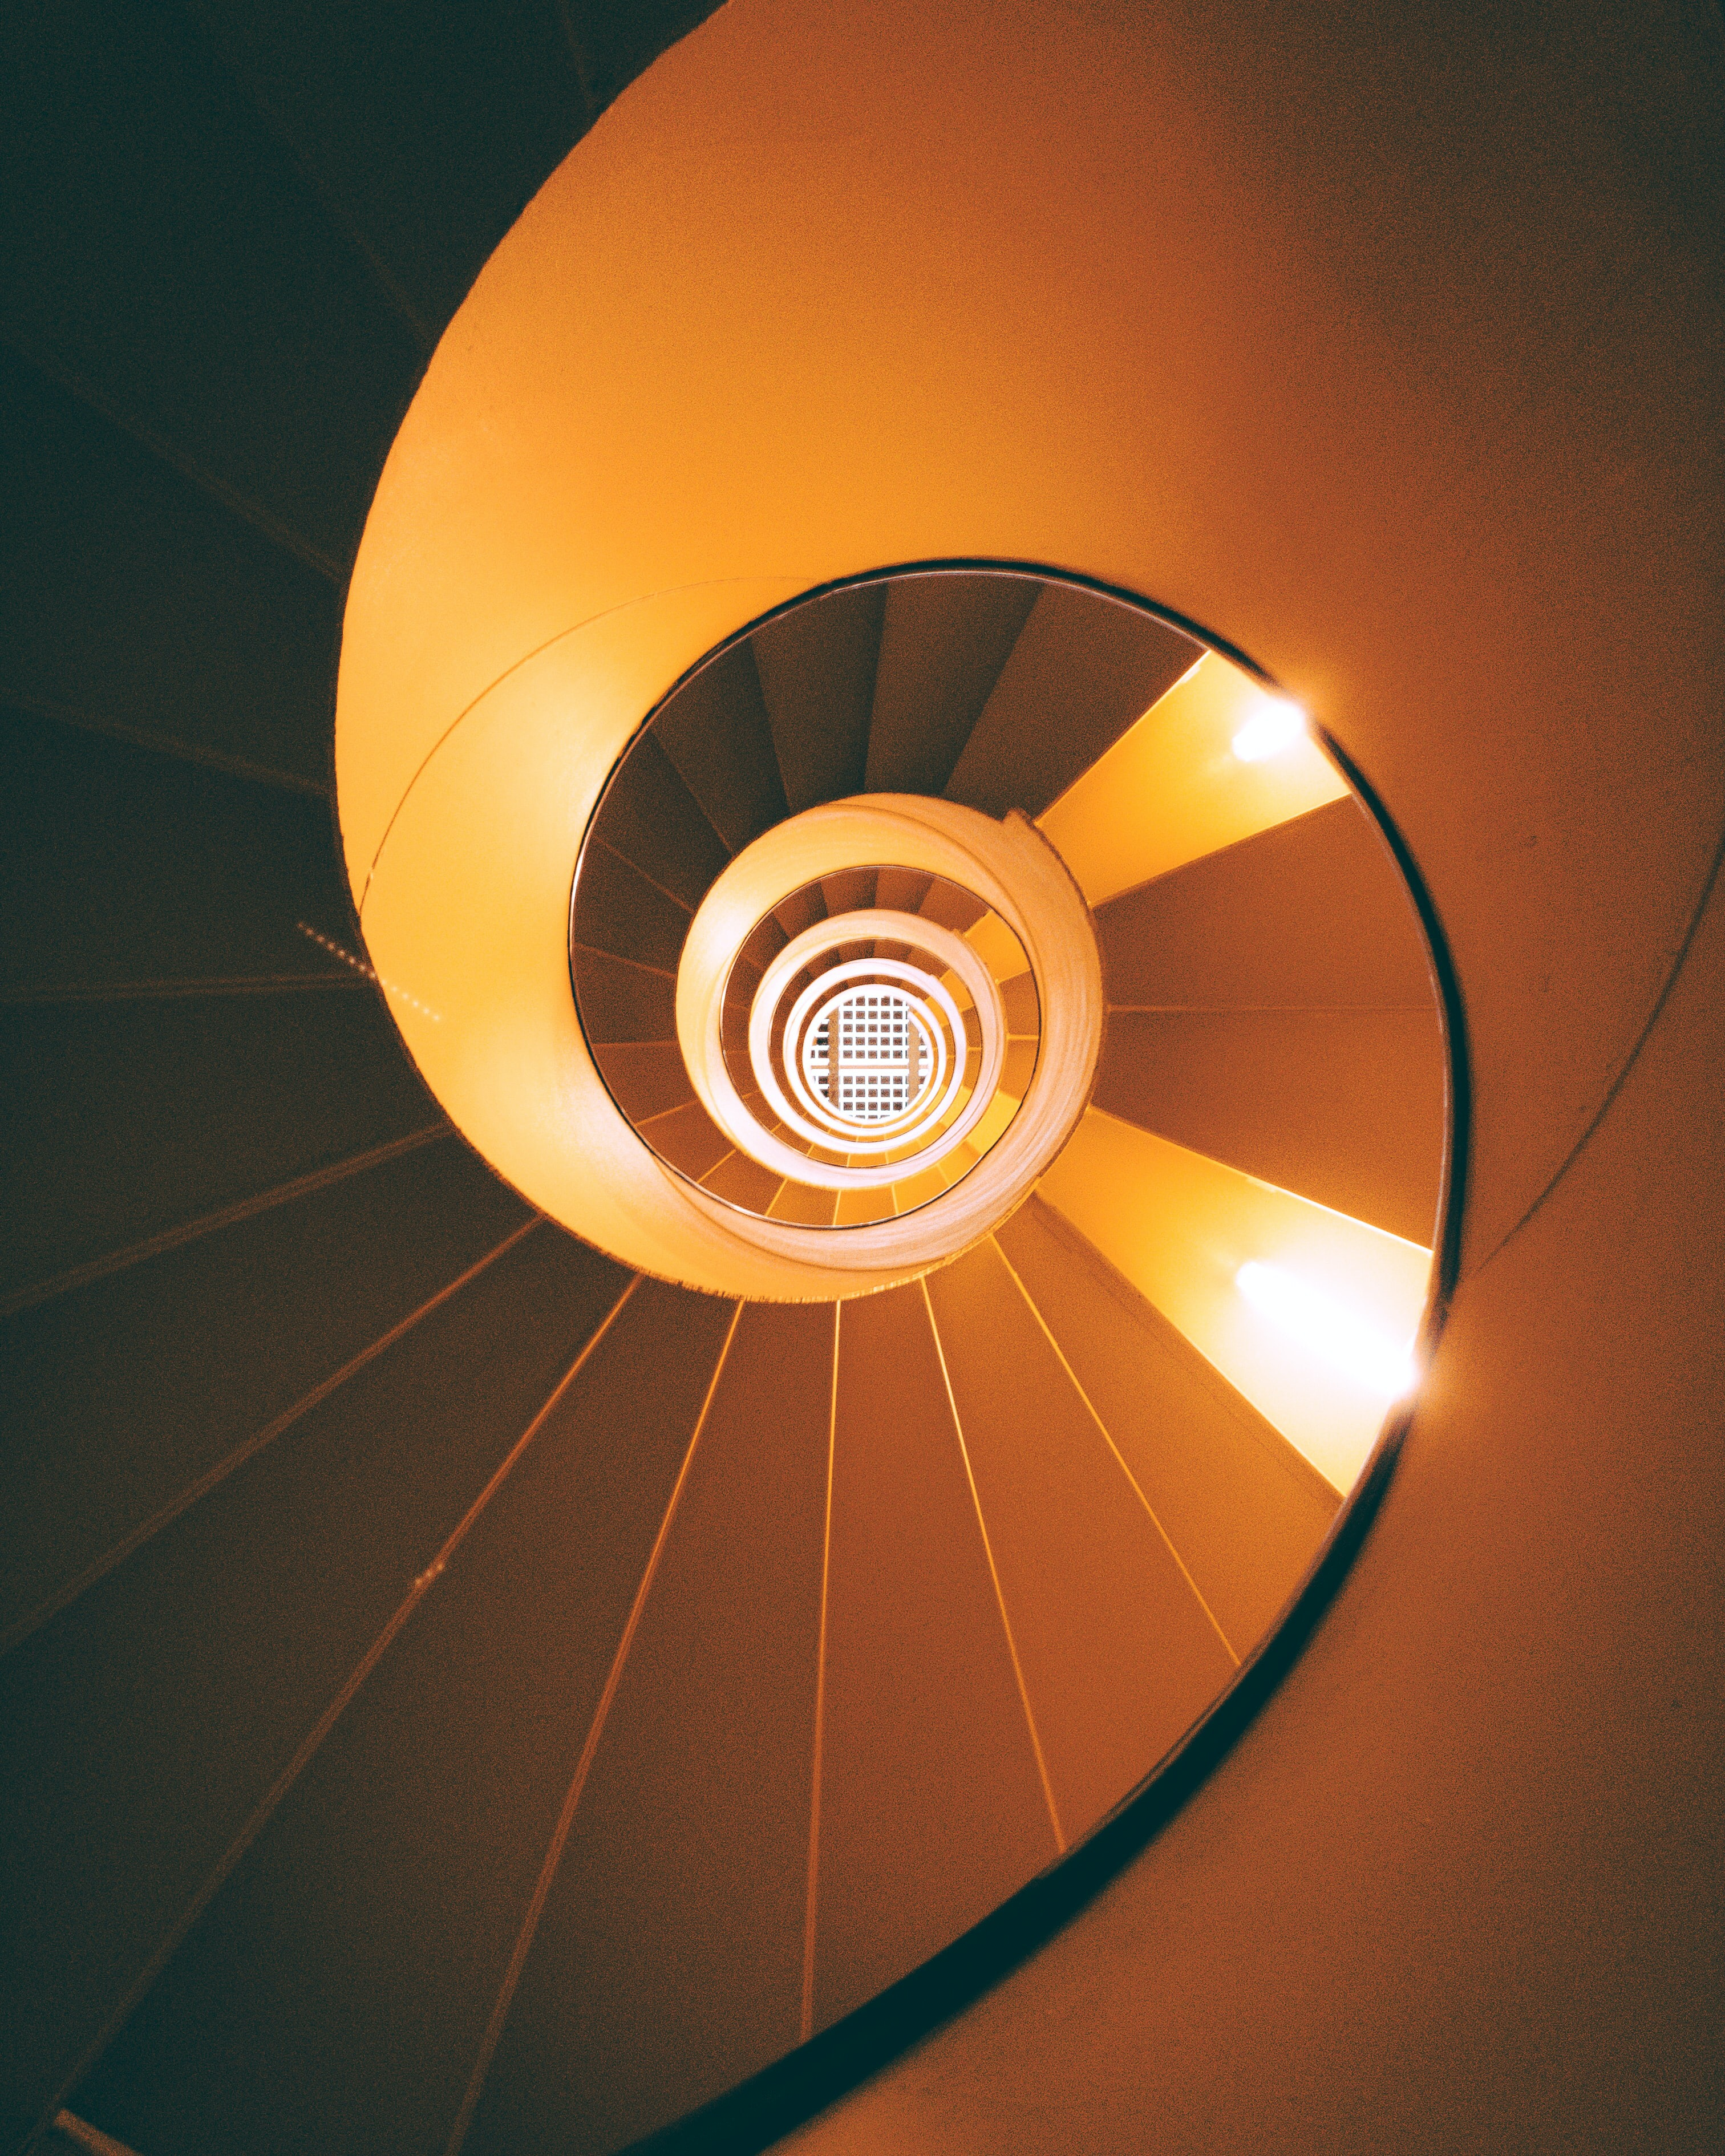 orange and brown spiral staircase